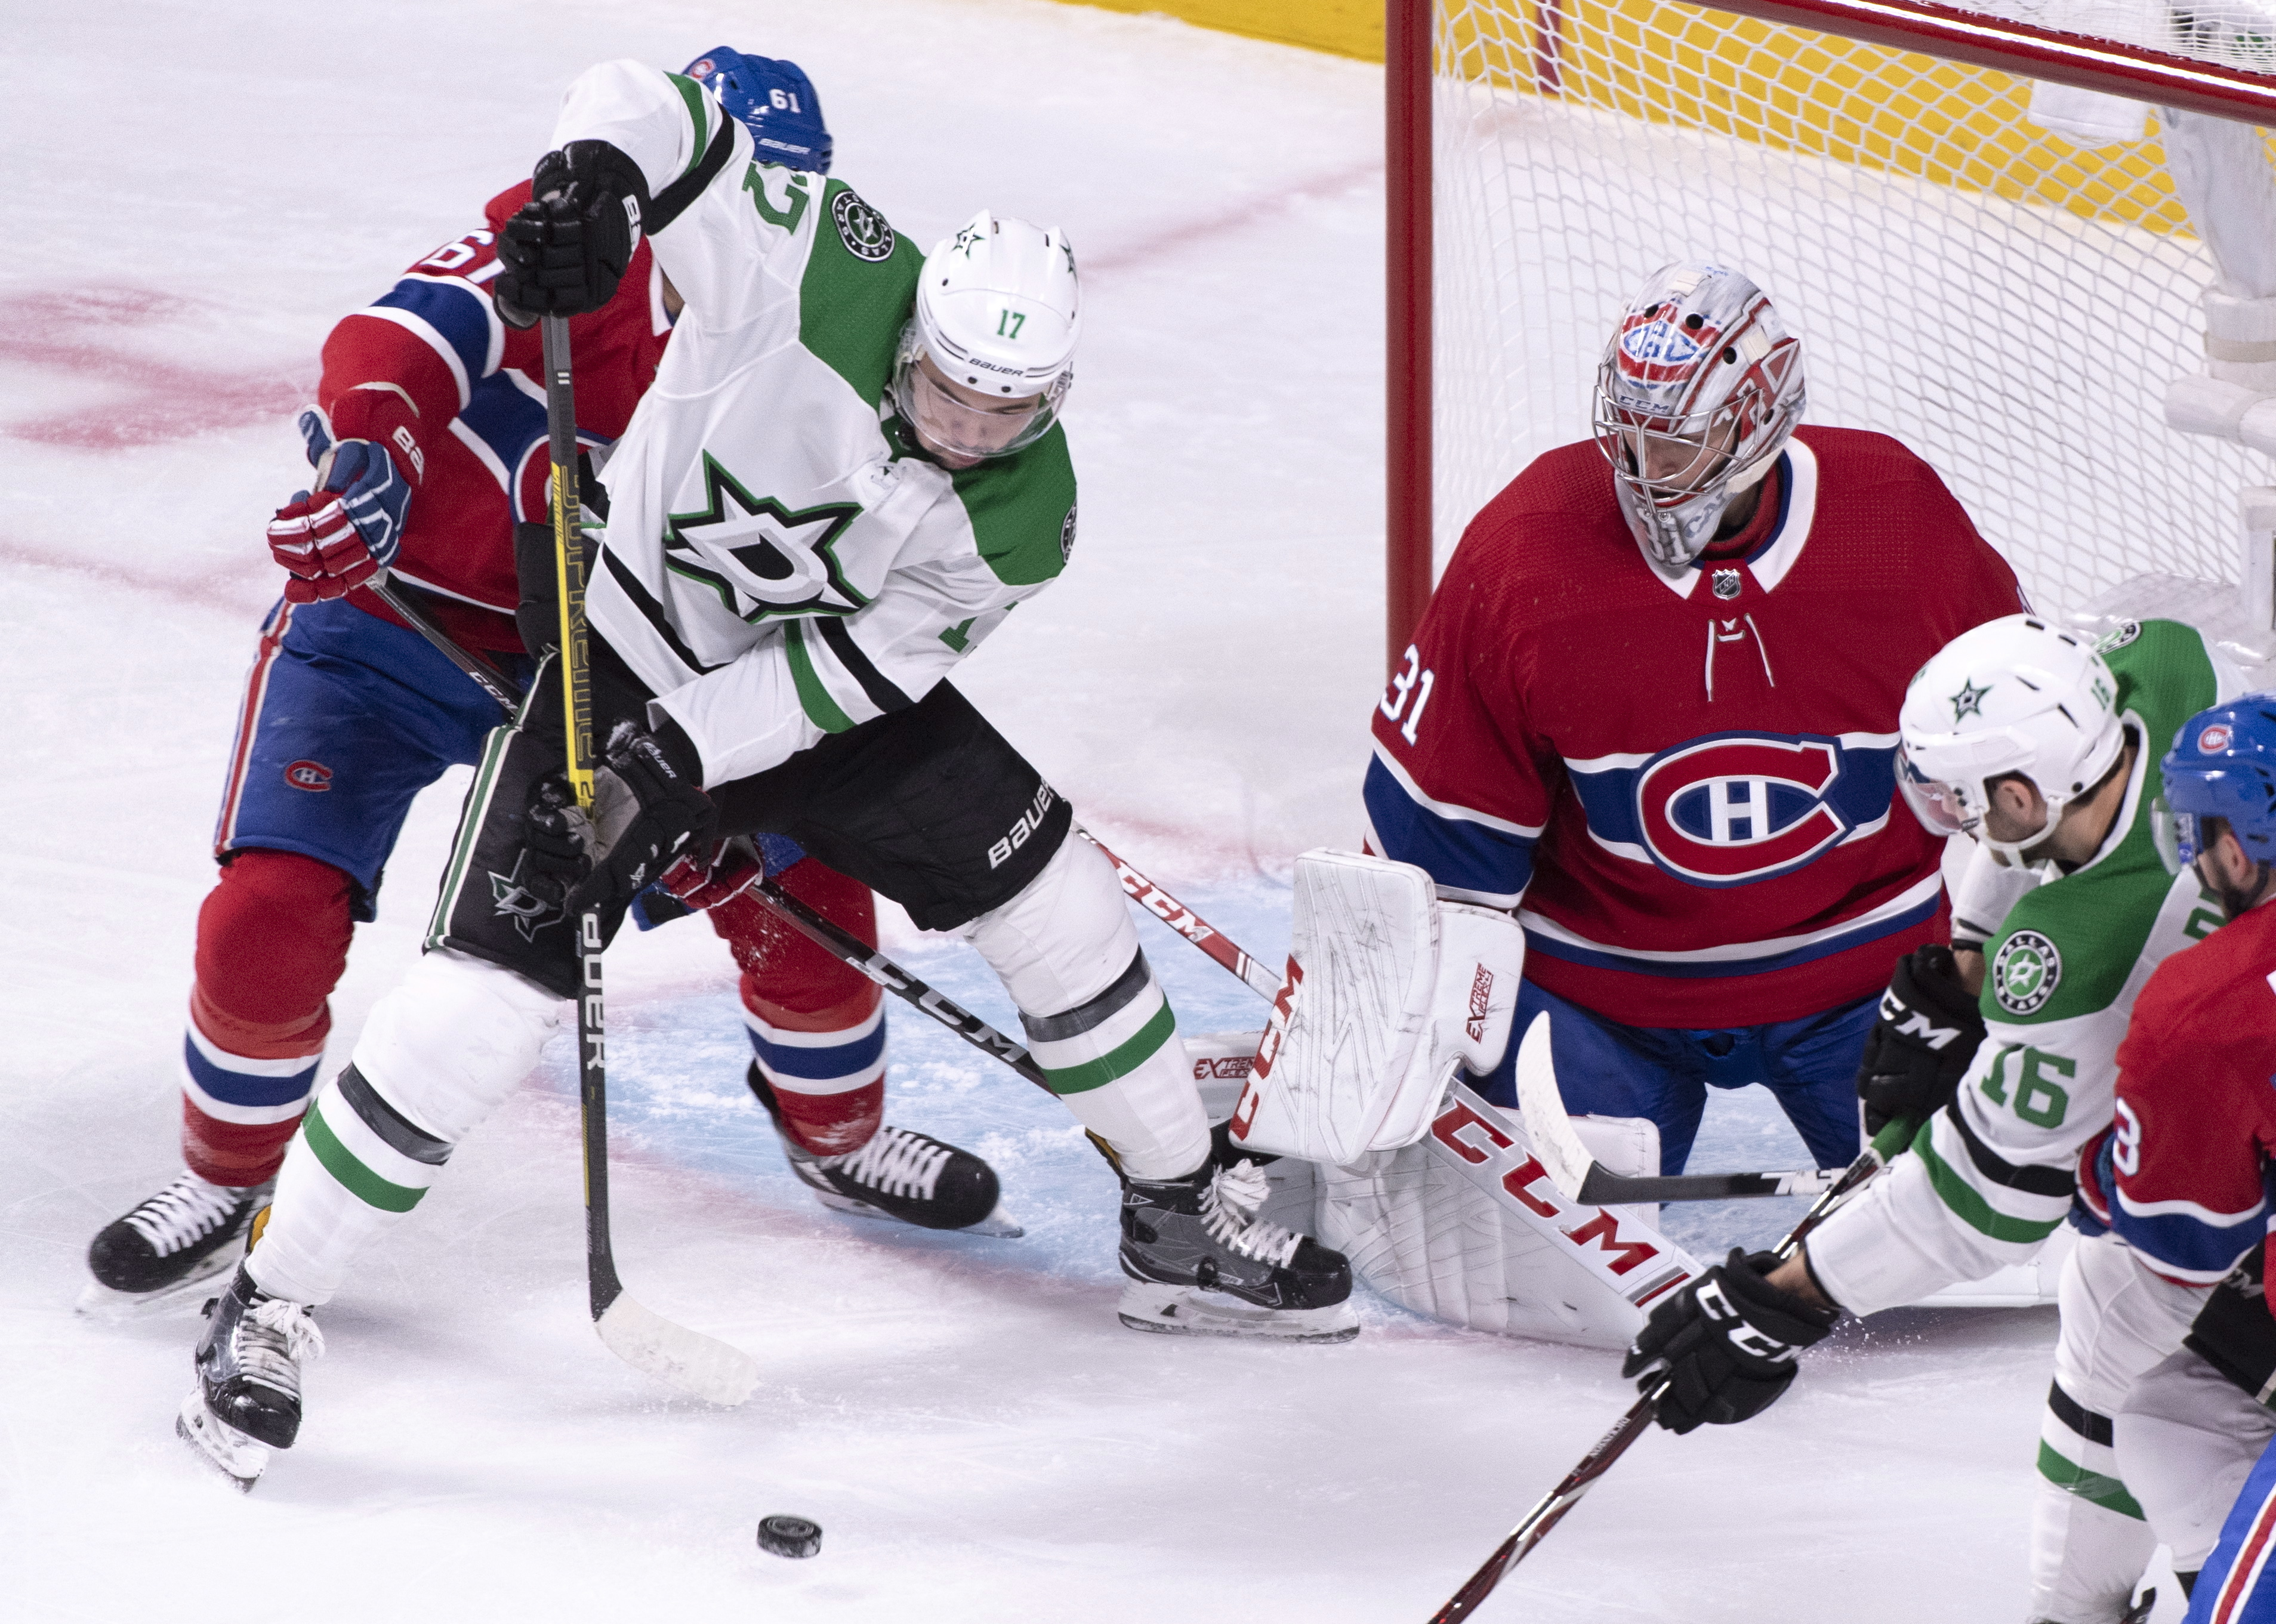 Shore has 3 points, Bishop 34 saves to lift Stars over Habs